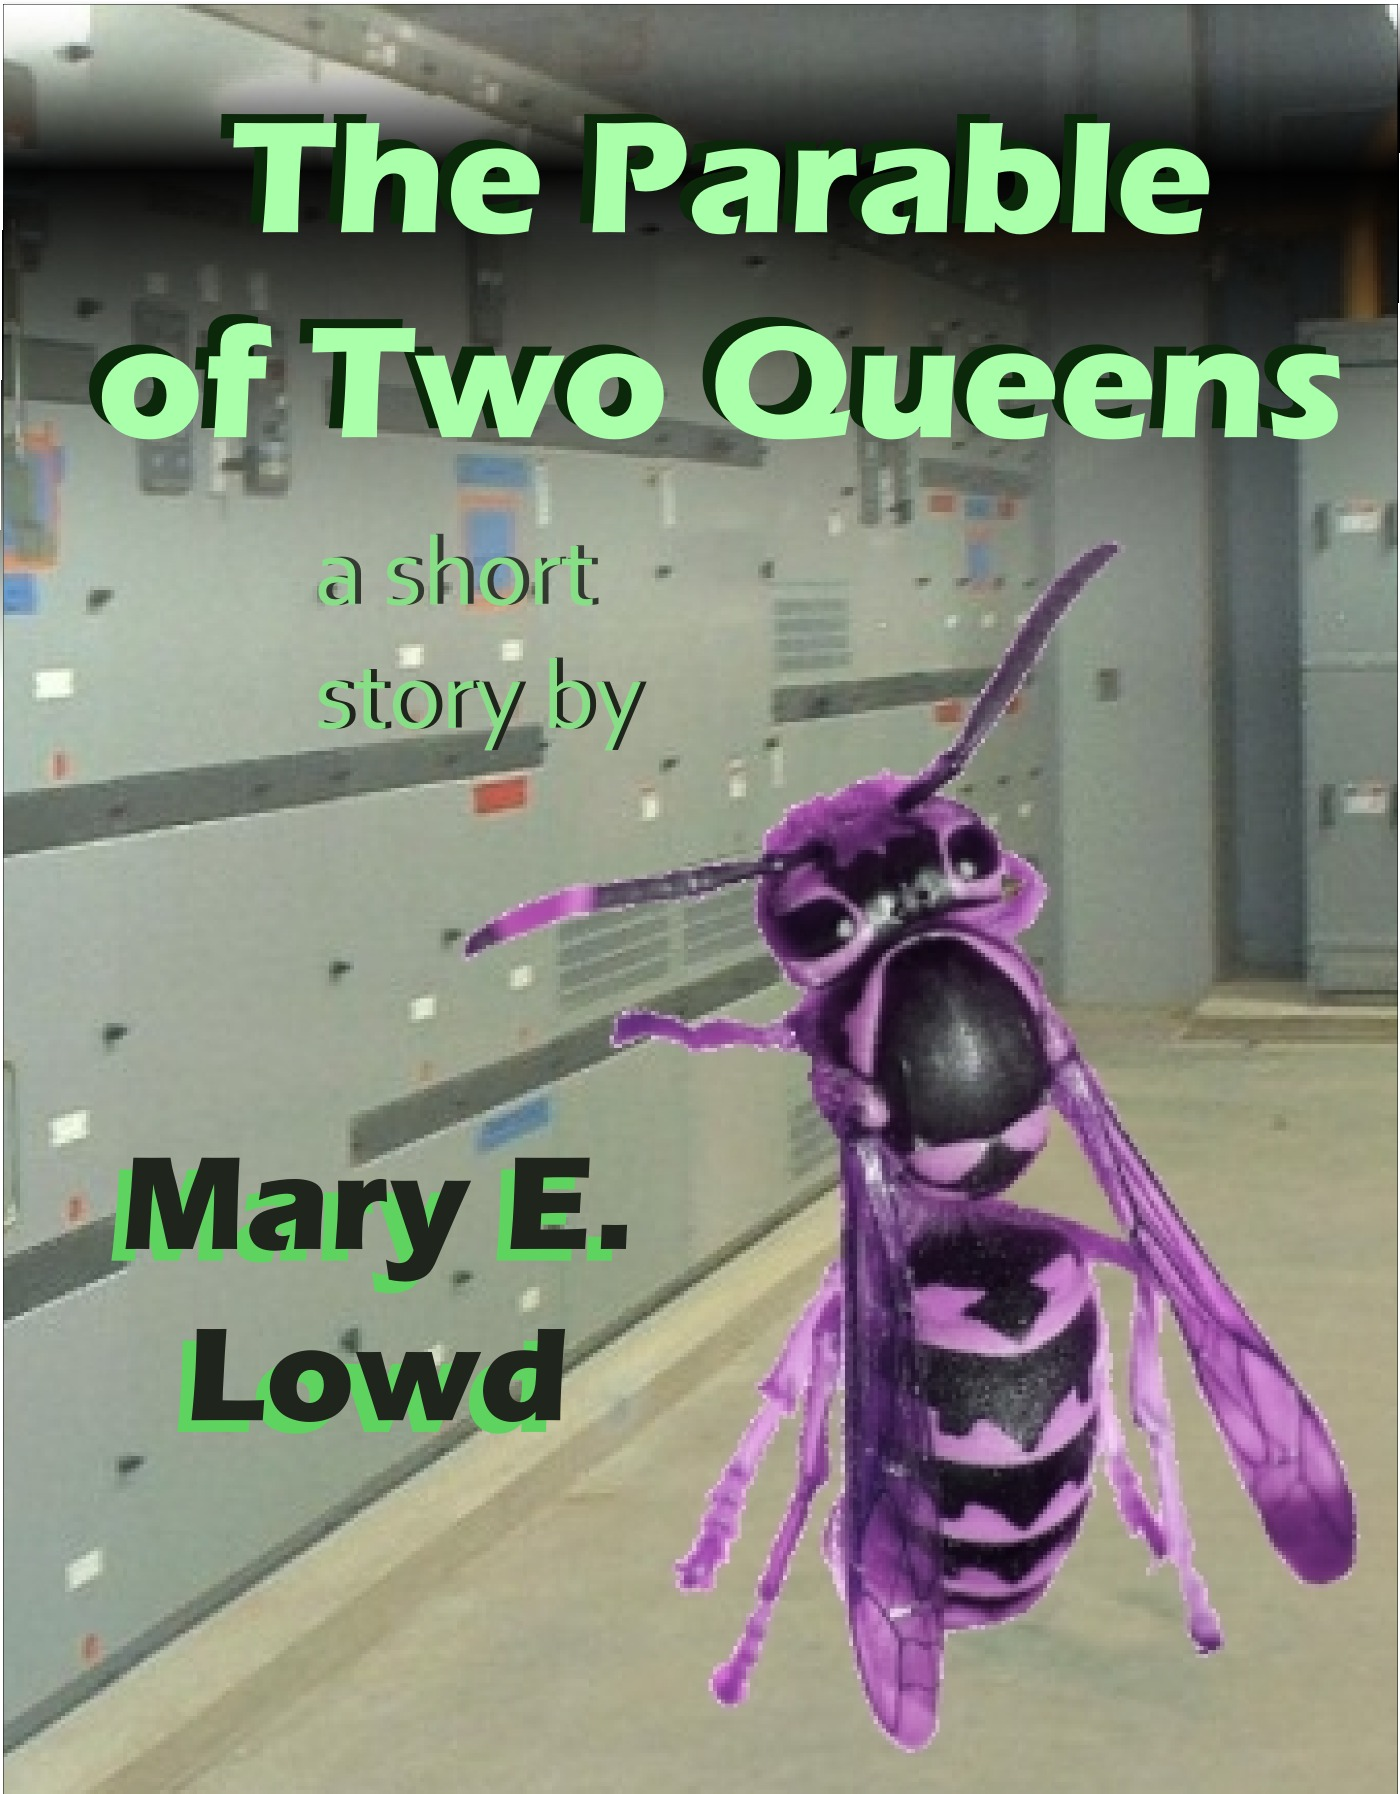 The Parable of Two Queens